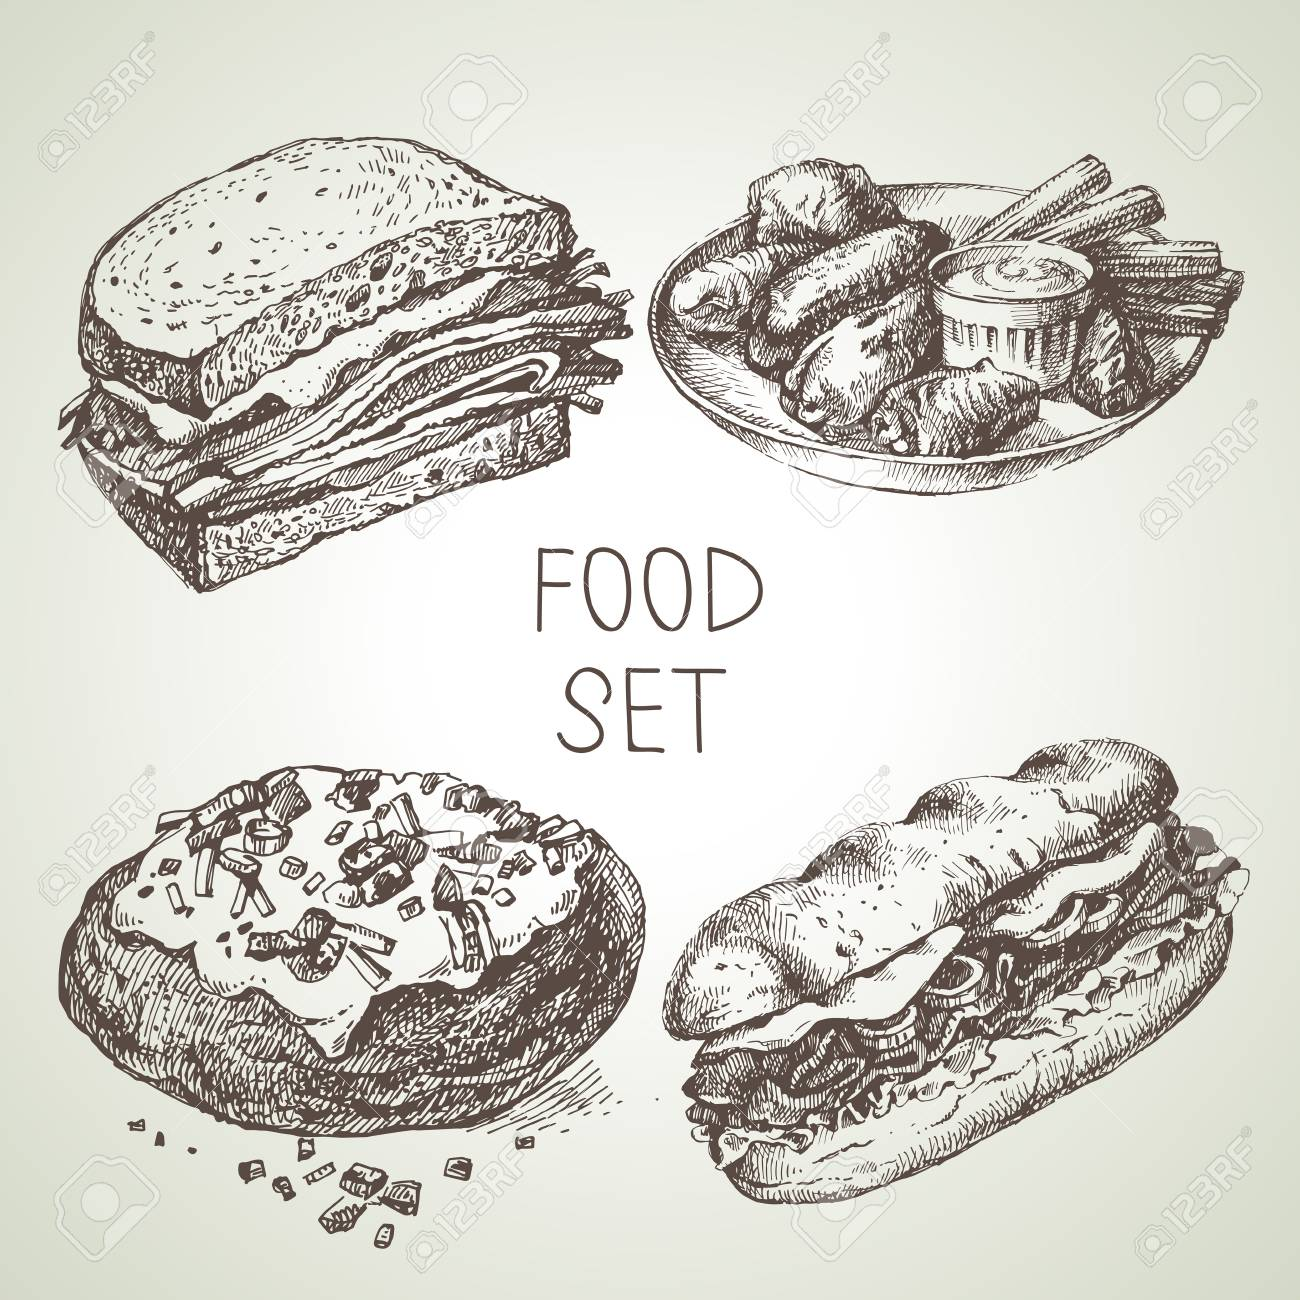 Hand drawn food sketch set of steak sub sandwich, buffalo chicken wings, backed potato, beef sandwich. Vector black and white vintage illustrations - 92872684